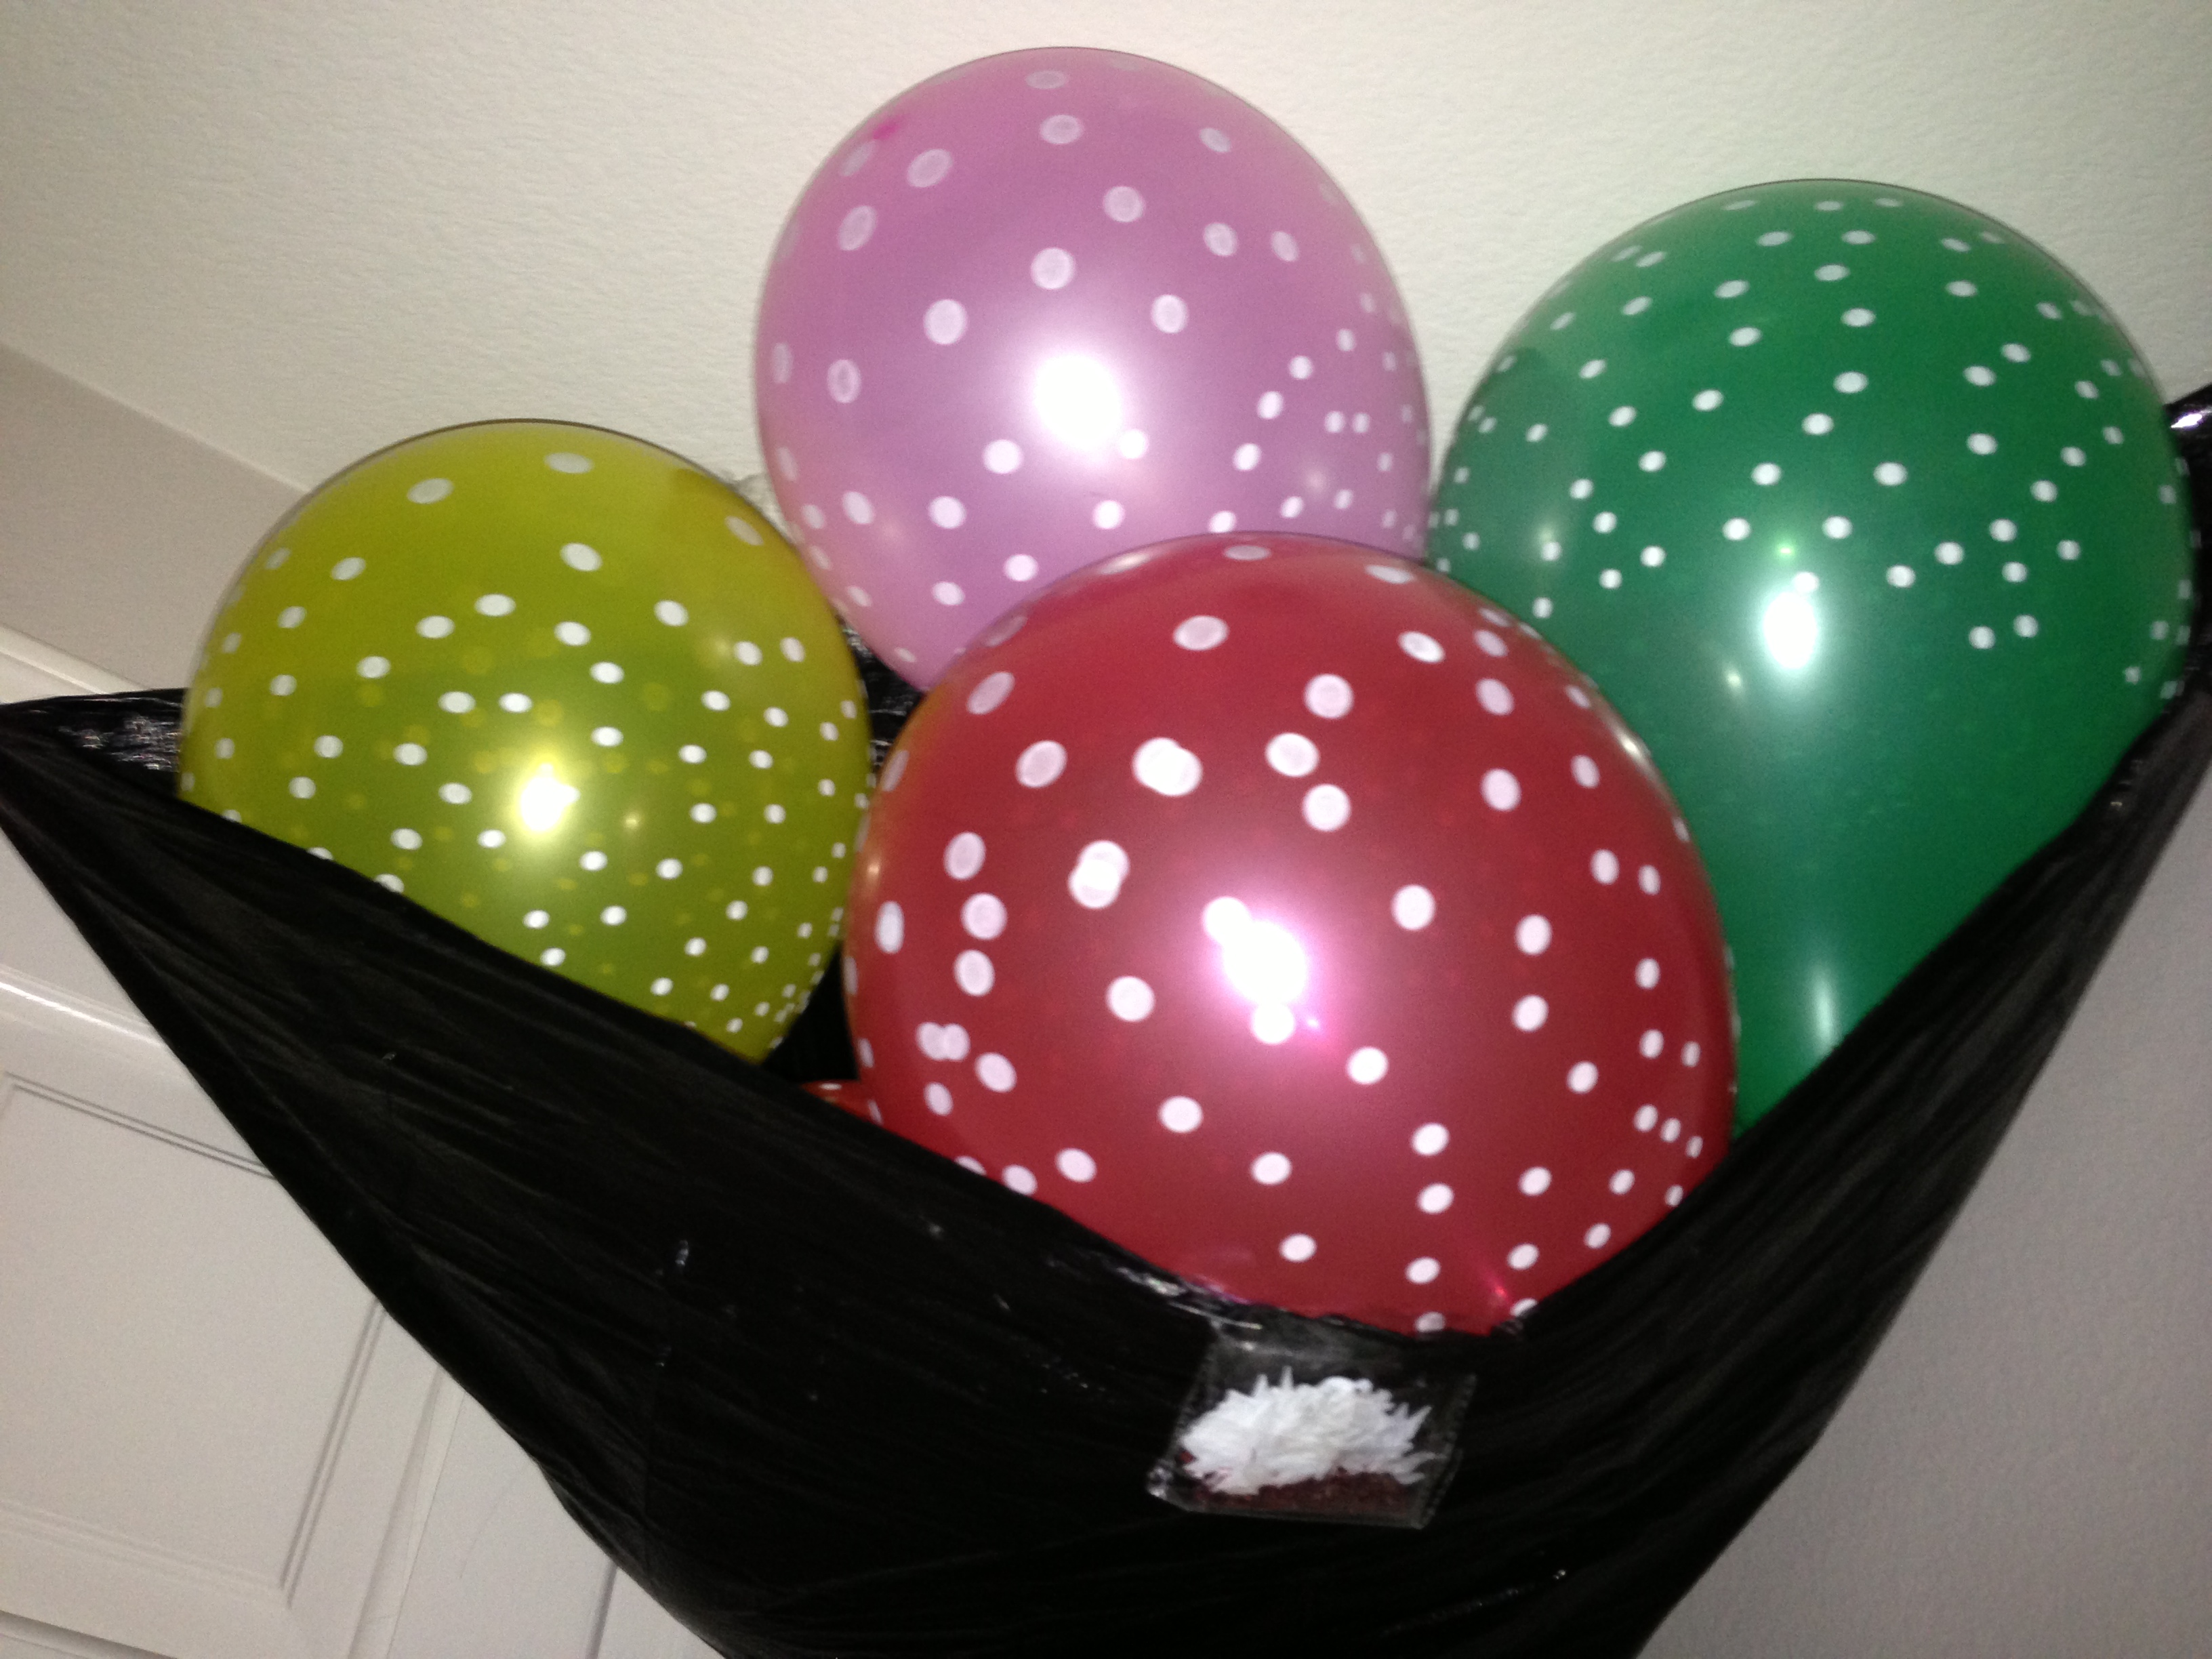 "Last year, I blew up these balloons, stuffed them into a cut garbage bag, and rigged them to drop, along with a bag of ""HAPPY BIRTHDAY!"" confetti pieces, upon Deepak's opening of the door. Like a"